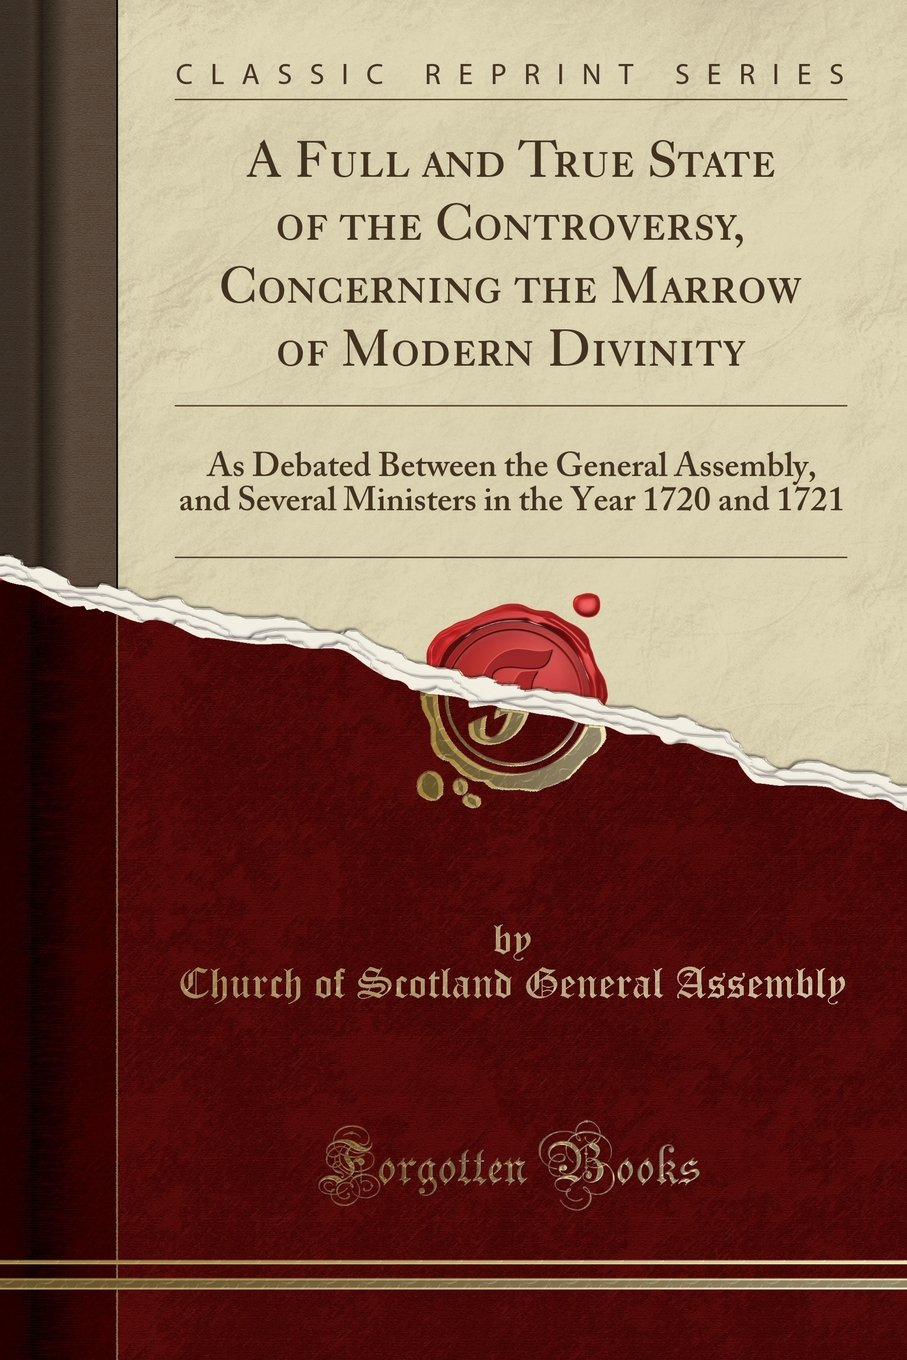 A Full and True State of the Controversy, Concerning the Marrow of Modern Divinity: As Debated Between the General Assembly, and Several Ministers in the Year 1720 and 1721 (Classic Reprint) pdf epub